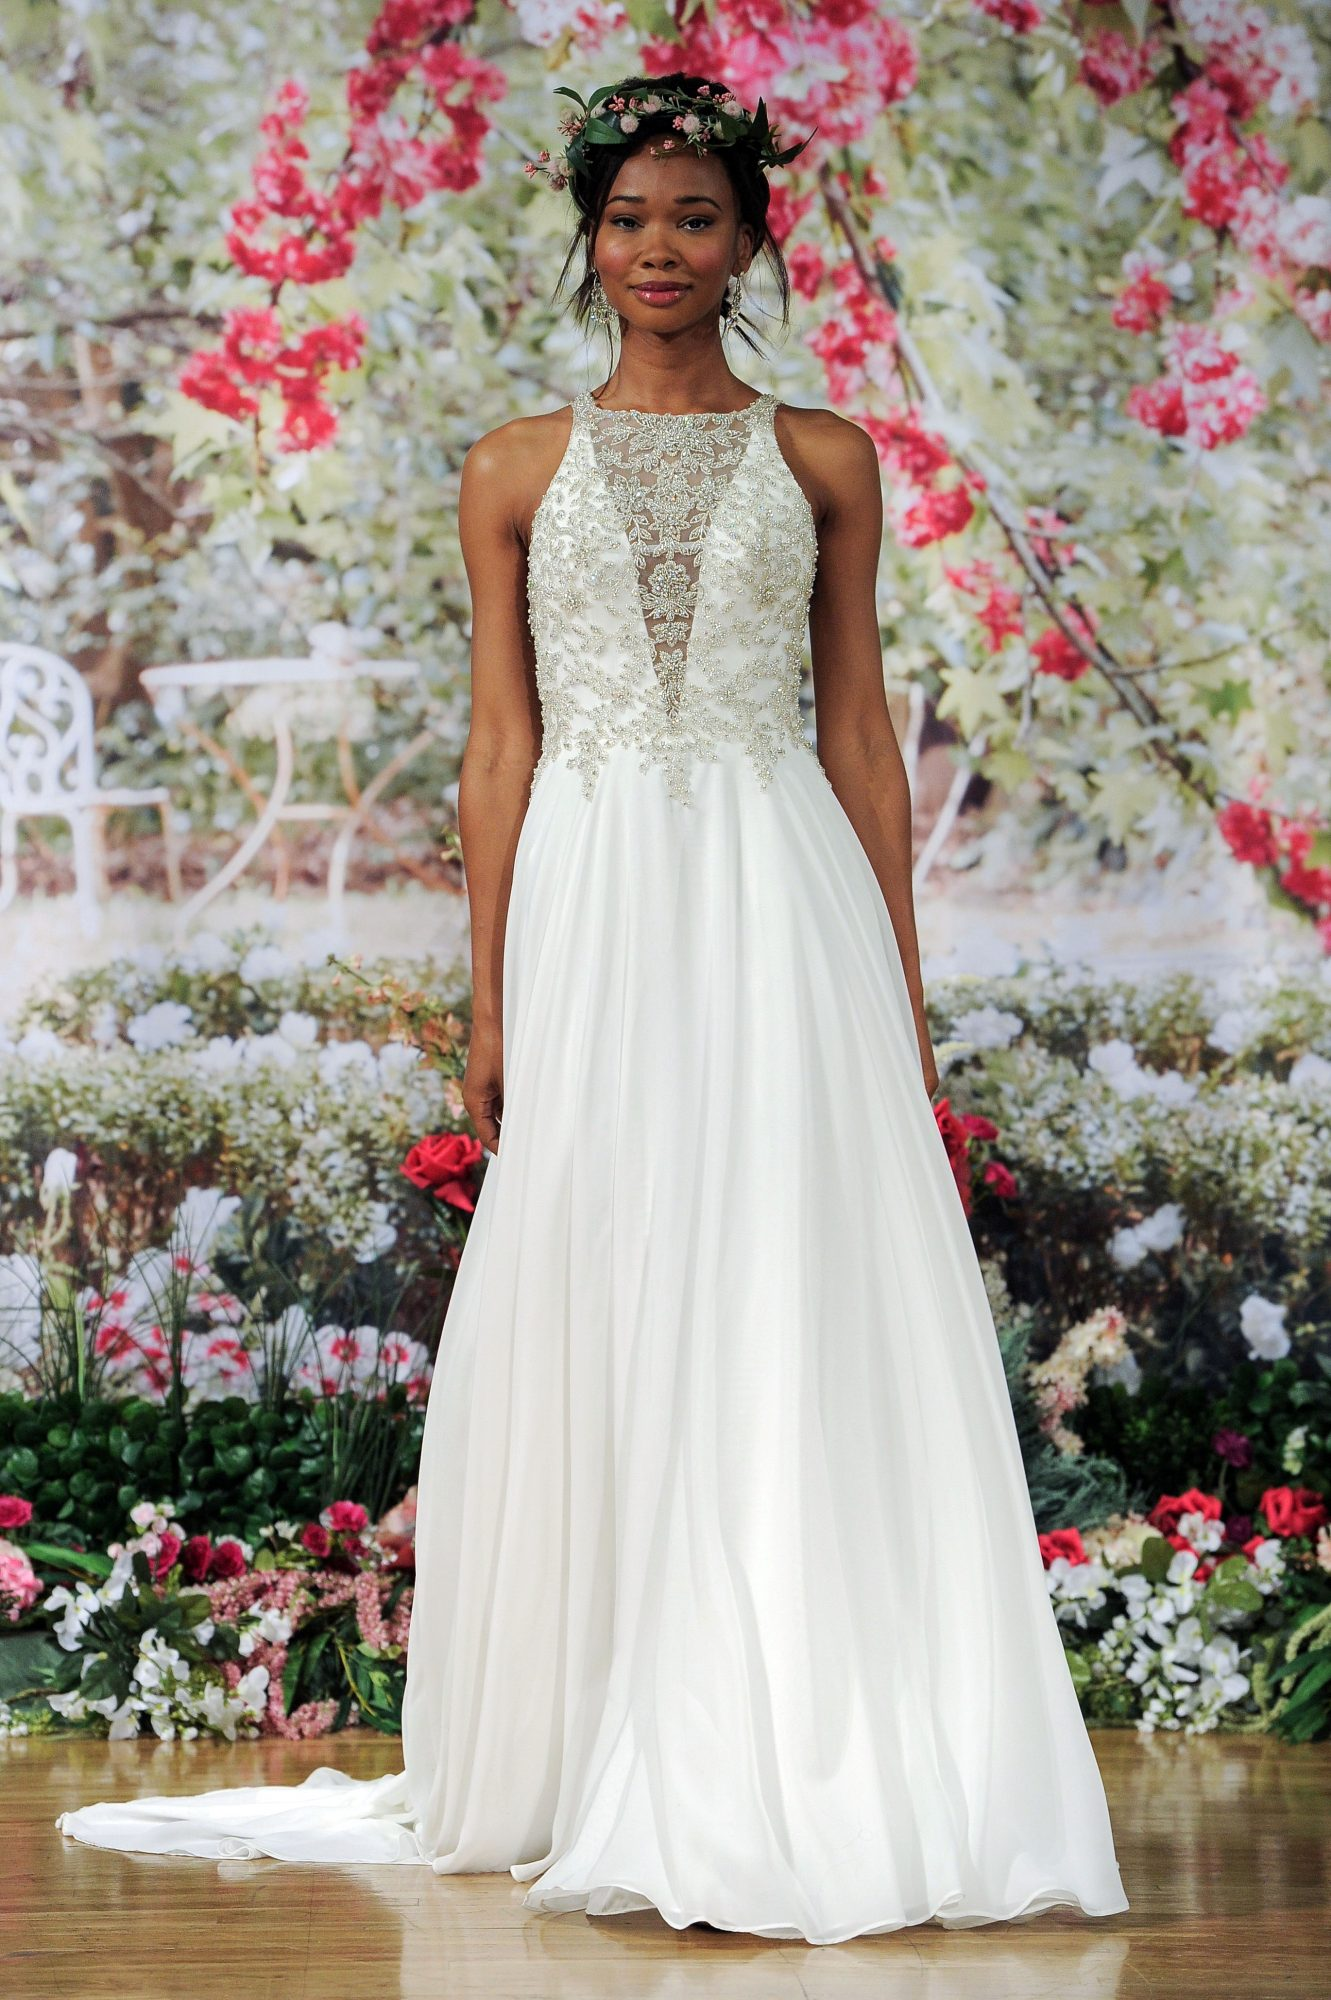 Maggie Sottero Fall 2017 Wedding Dress with Deep V and Illusion Neckline